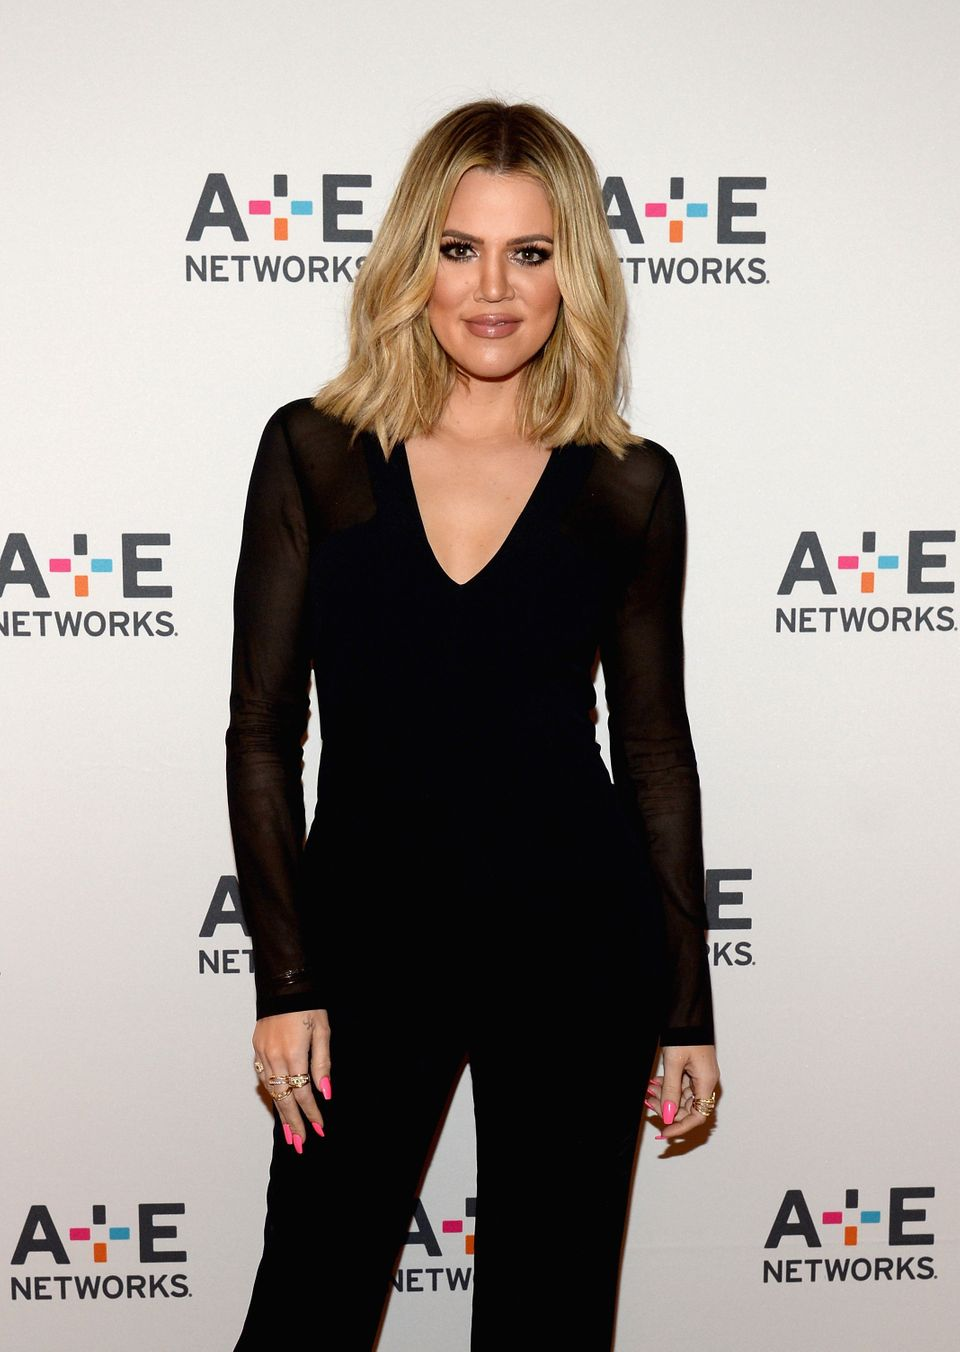 PASADENA, CA - JANUARY 06:  Television personality Khloe Kardashian attends the A+E Networks 2016 Television Critics Associat